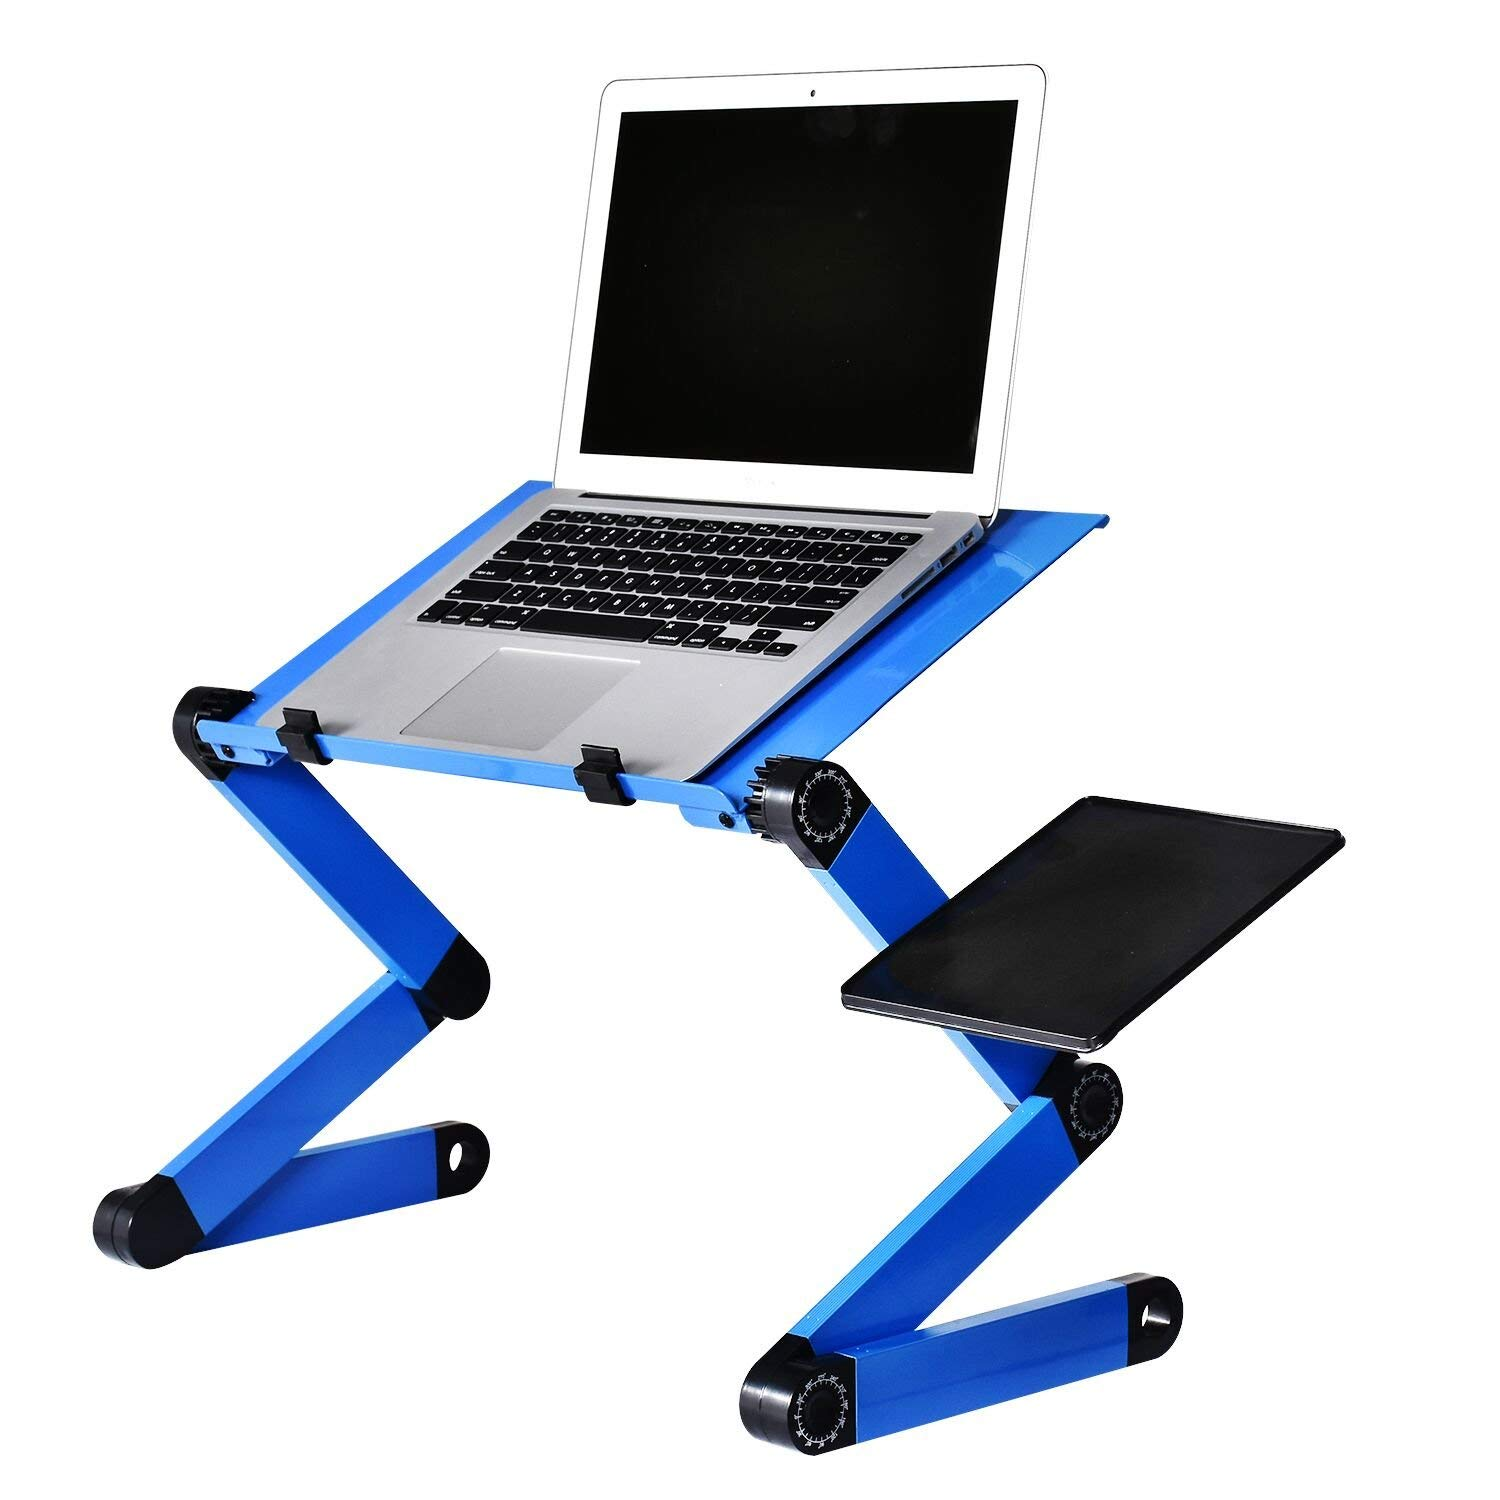 B BAIJIAWEI Adjustable Laptop Stand Desk Table for Bed and Sofa, Portable Laptop Computer Desk with CPU Cooling Fan and Mouse Pad Side